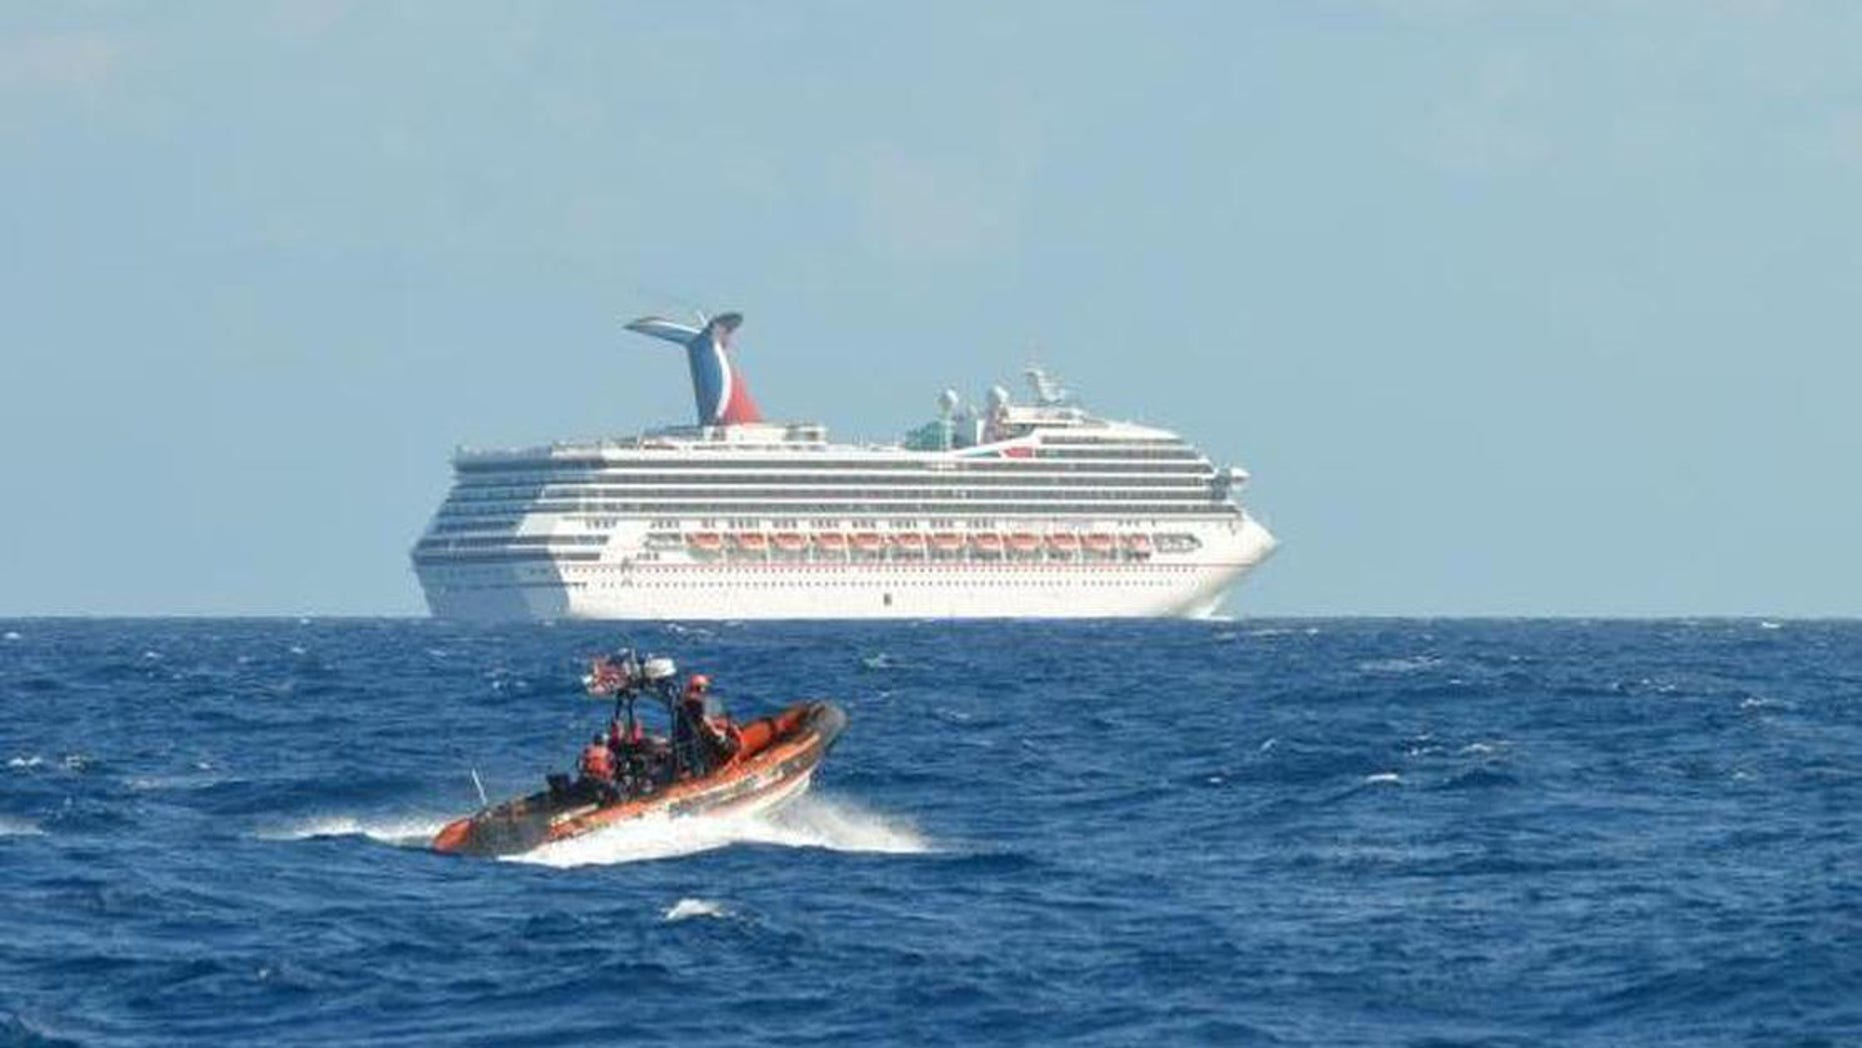 The Triumph cruise ship, set adrift in the Gulf of Mexico after an engine room fire Sunday, is being towed to Mobile, Alabama. The Carnival cruise ship line has cancelled the ship's next 14 voyages.